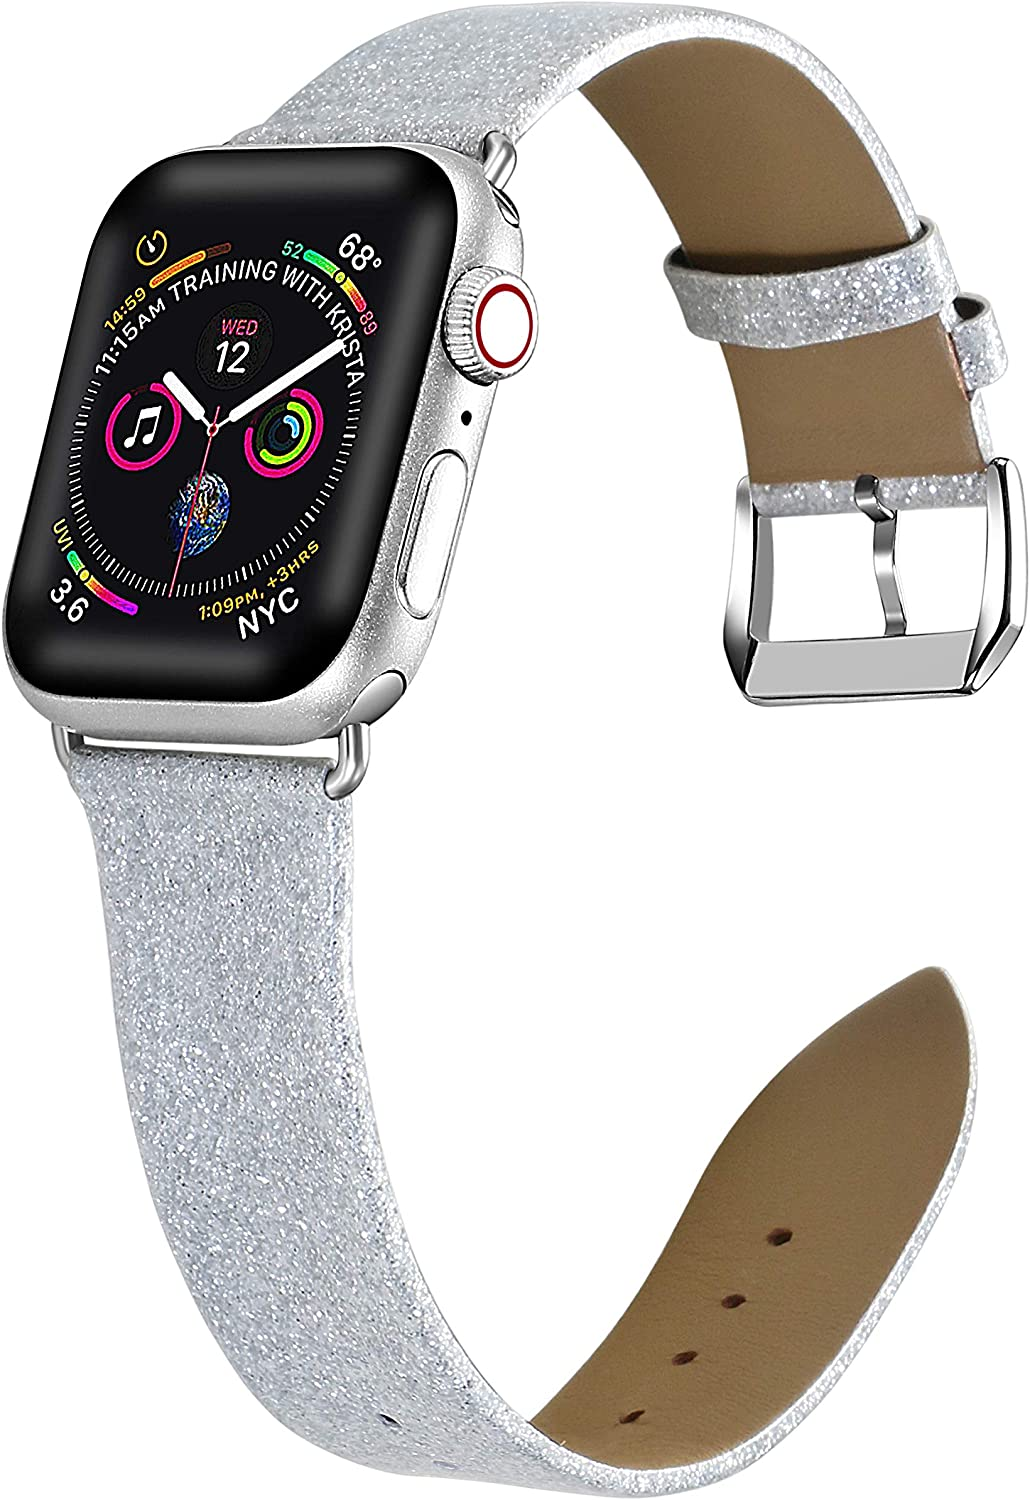 Libra Gemini Compatible for Apple Watch 38mm 40mm Leather Band , Genuine Leather Shiny Bling Glitter Strap Compatible iWatch Series5/ 4/3/2/1, Sports & Edition Women (Silver)